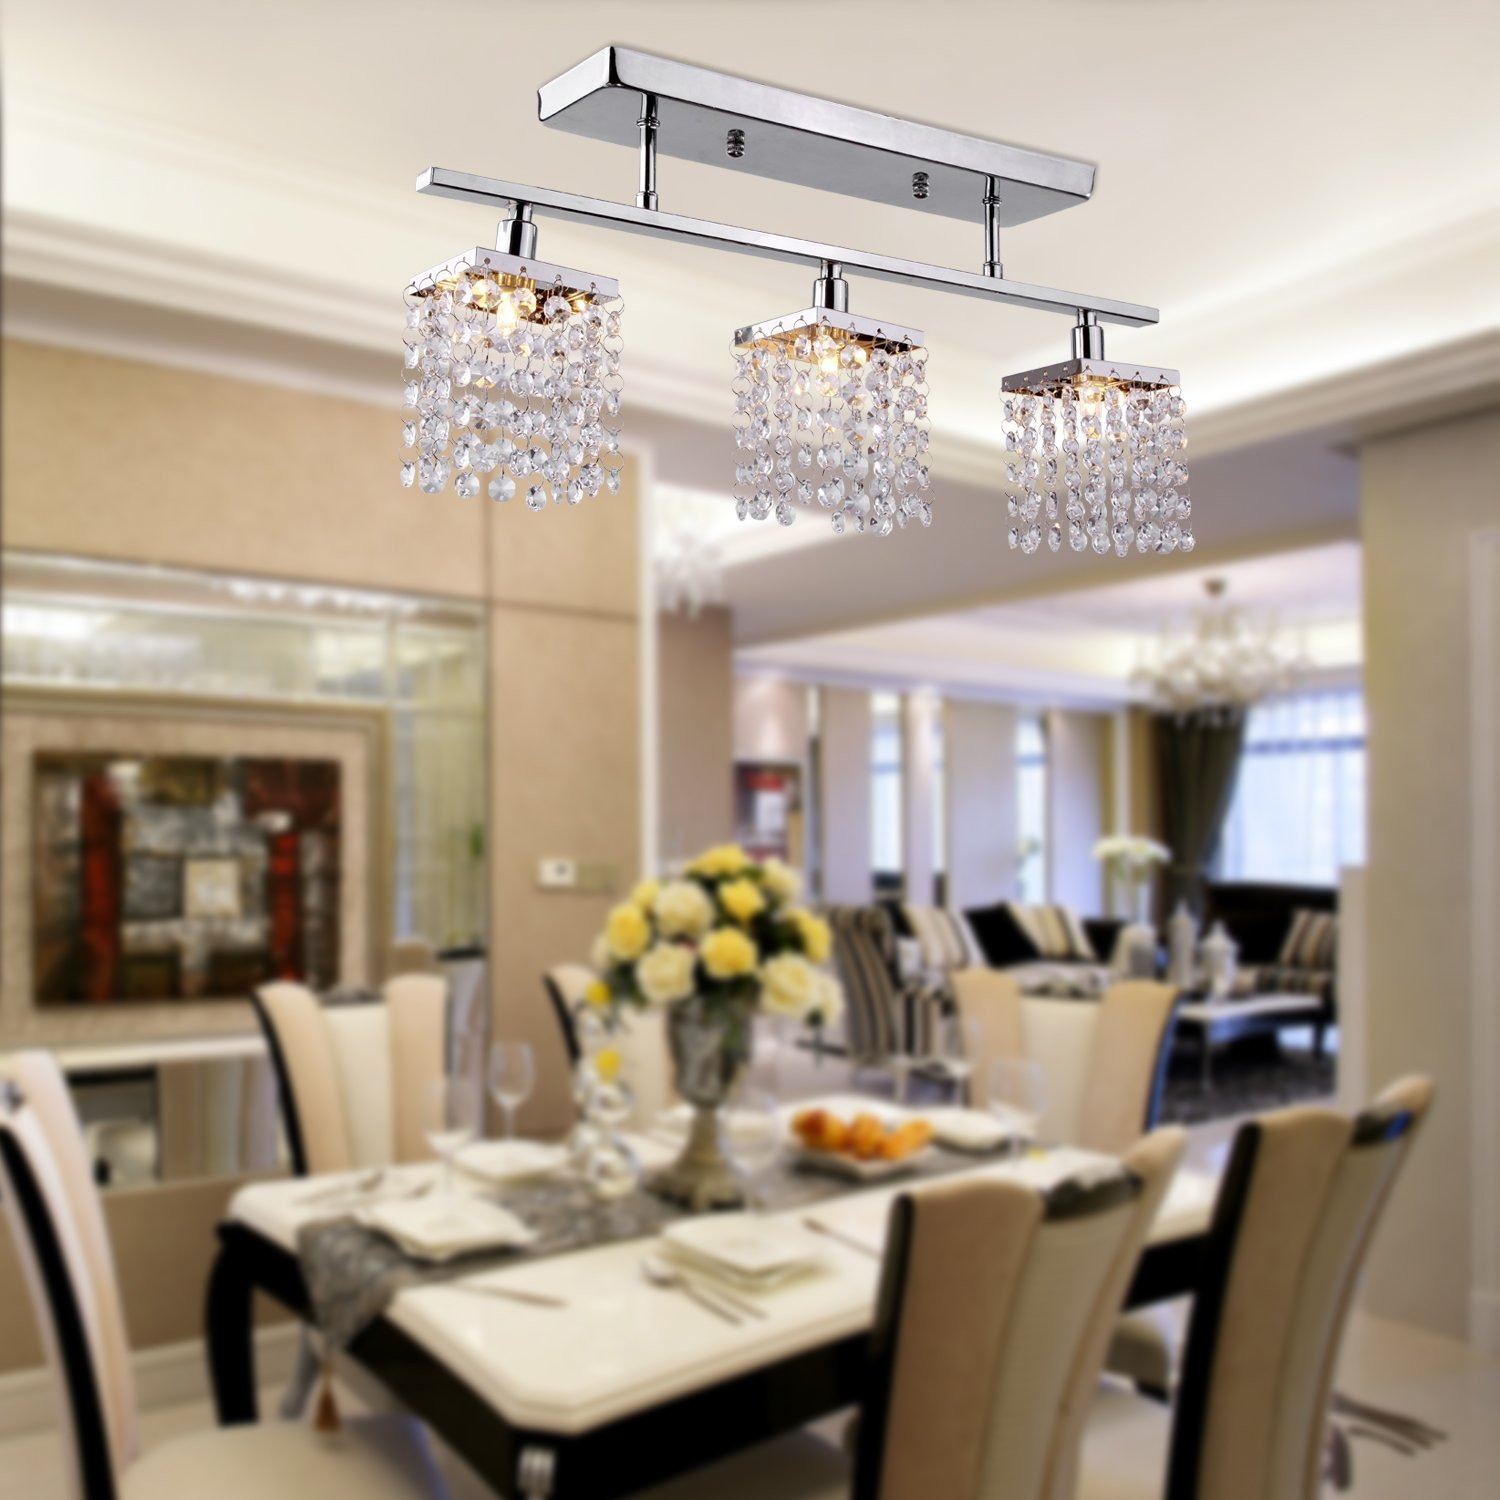 3 Light Hanging Crystal Linear Chandelier With Fixture, Modern Flush Mount  Ceiling Light Fixture For Entry Dining Room, Bedroom In Pendant Lights From  ...